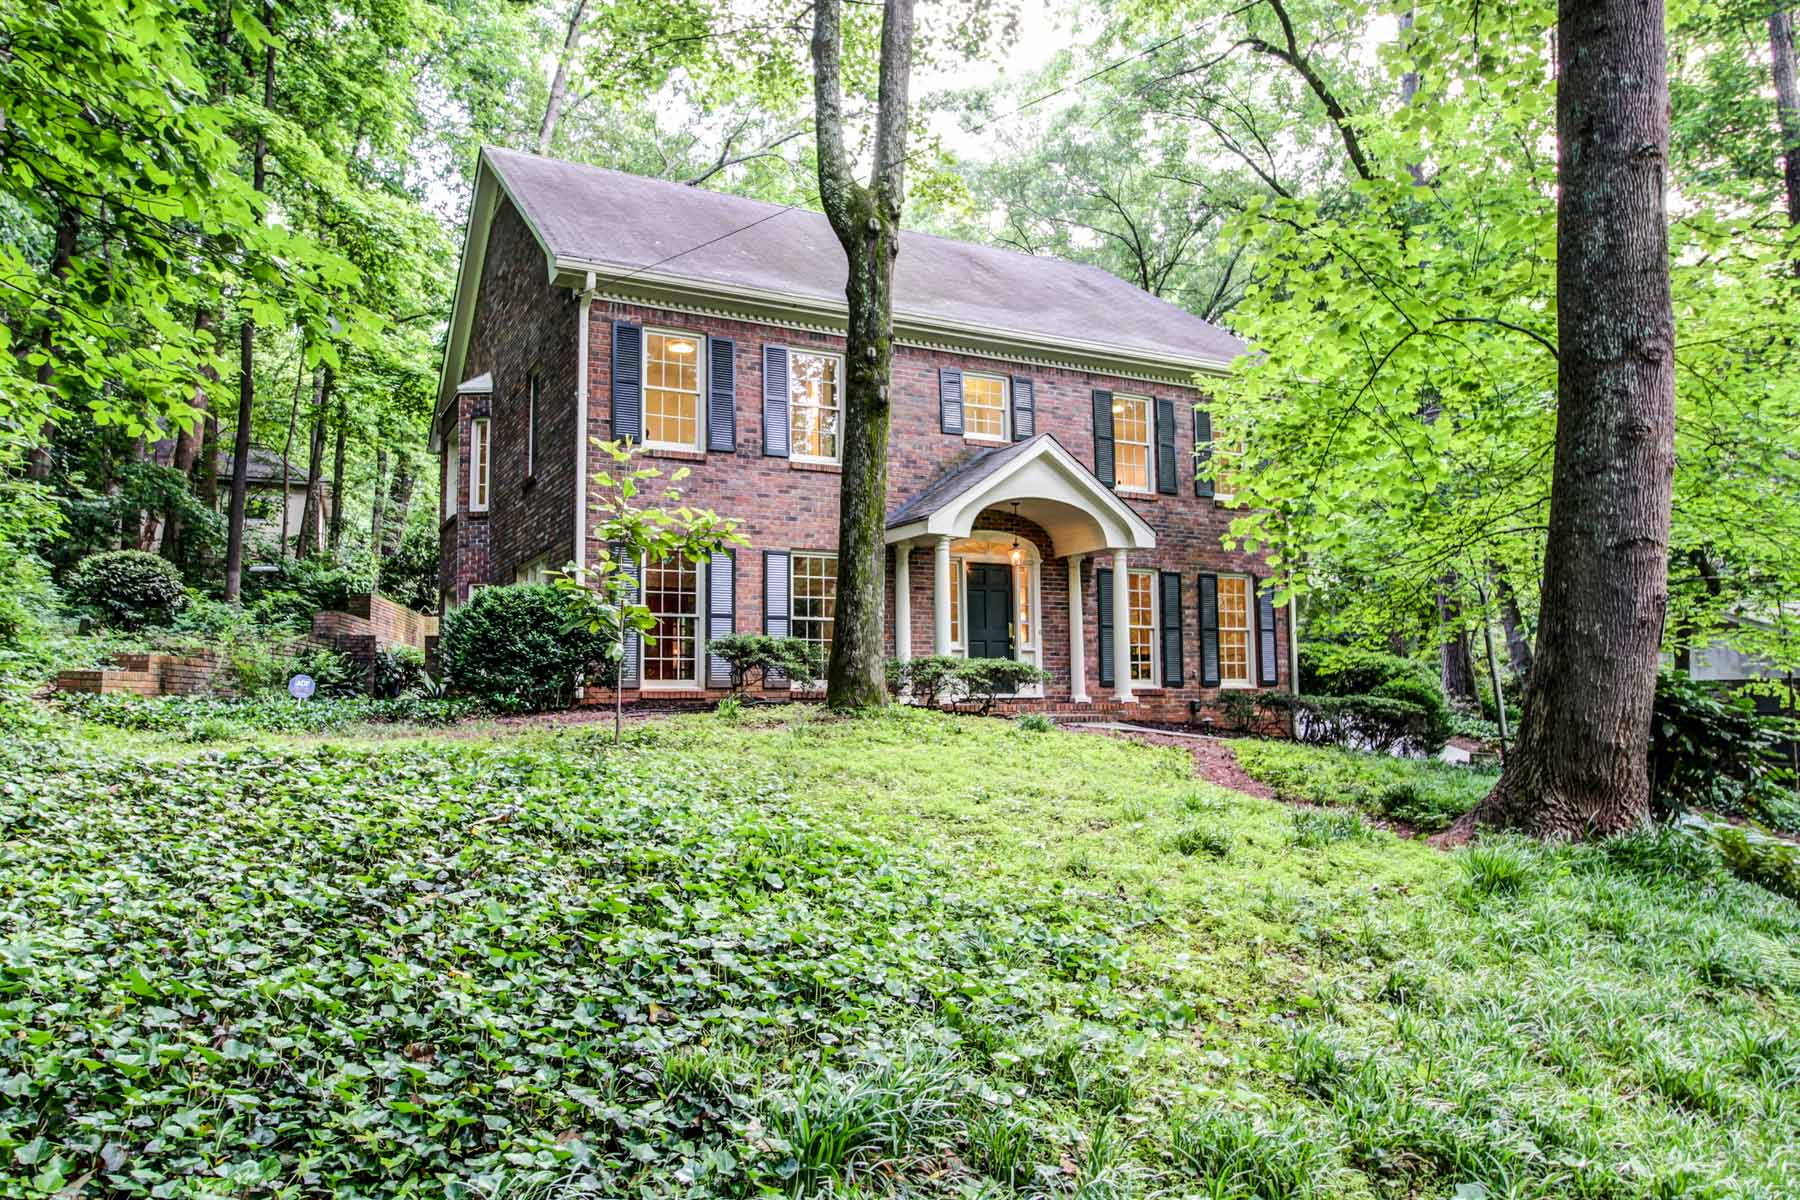 Casa para uma família para Venda às Custom built private retreat with Fernbank as your neighbor. 943 Barton Woods Road Druid Hills, Atlanta, Geórgia, 30307 Estados Unidos